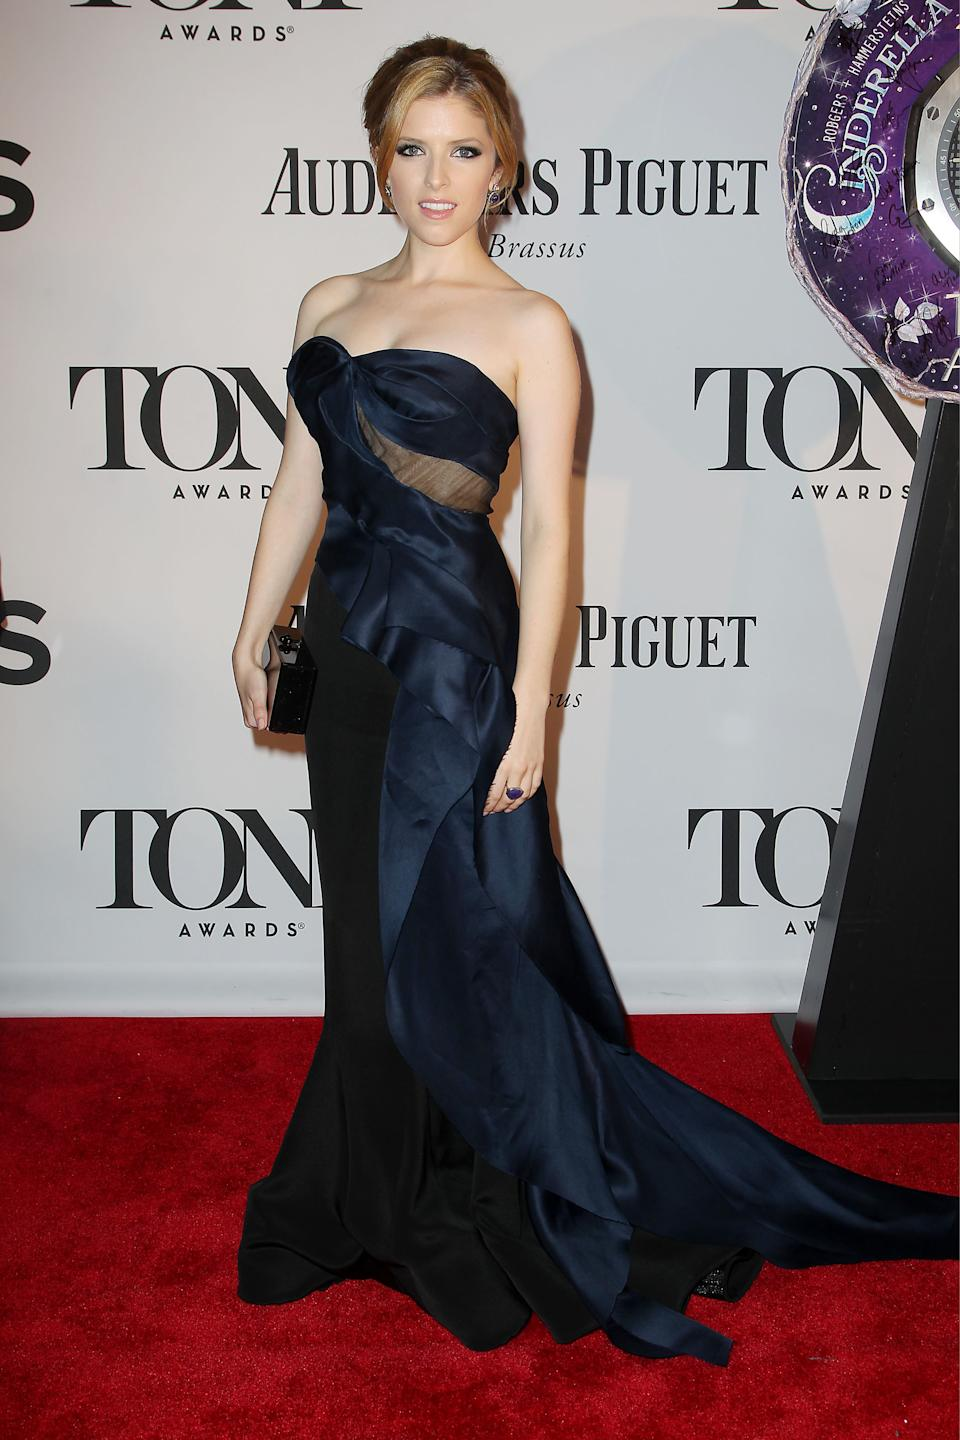 This image released by Starpix shows Anna Kendrick at the 67th Annual Tony Awards in New York on Sunday, June 9, 2013. (AP Photo/Starpix, Amanda Schwab)